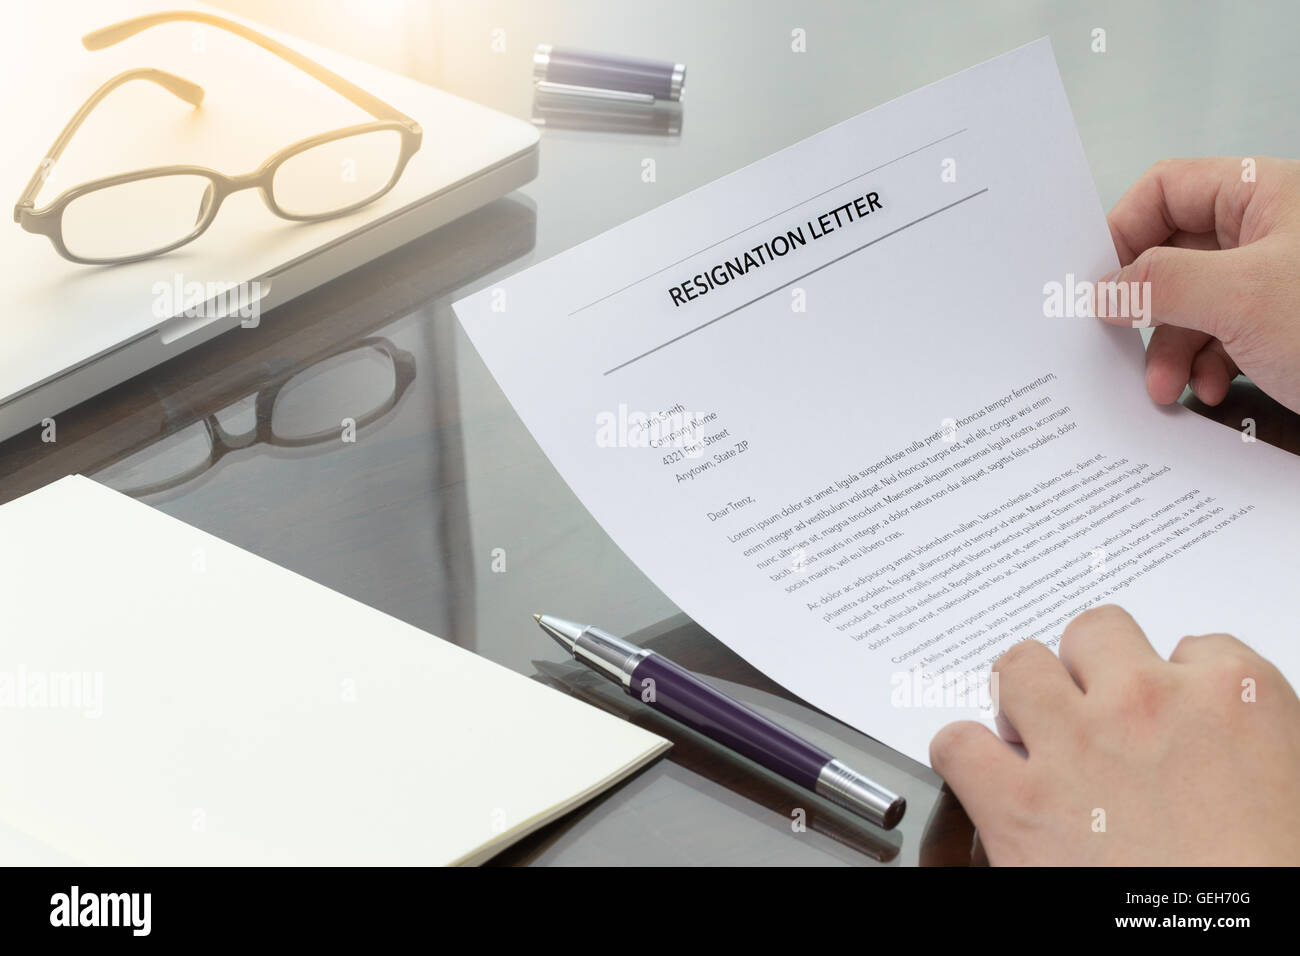 Businessman review his resignation letter on his desk before sending to his boss to quit his job. Resignation letter - Stock Image